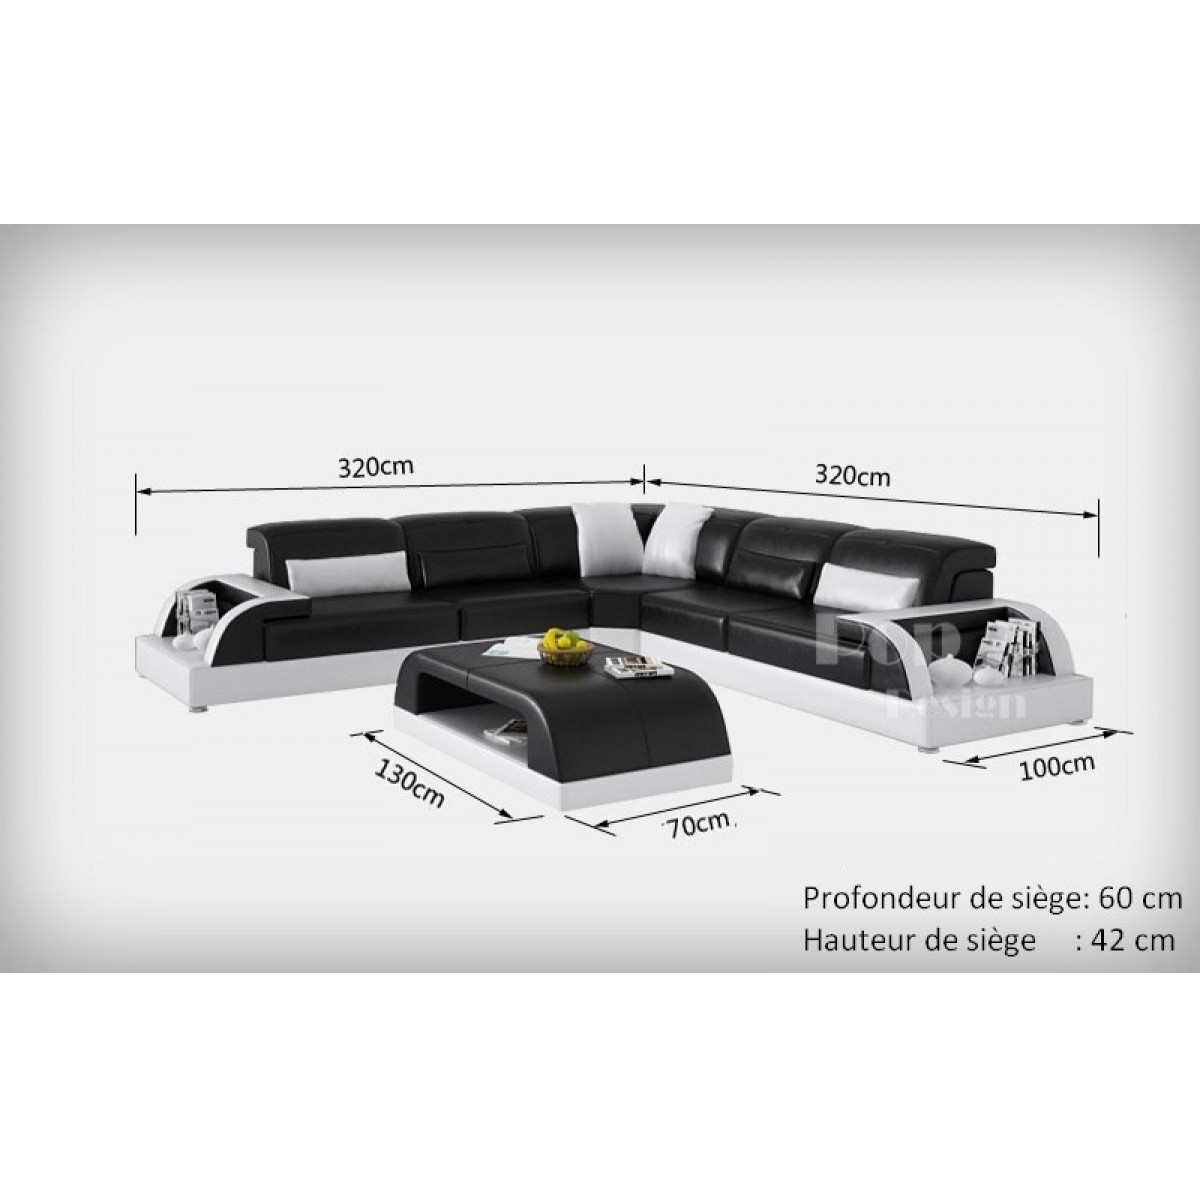 Canap d 39 angle design en cuir bolzano l pop for Dimension canape d angle